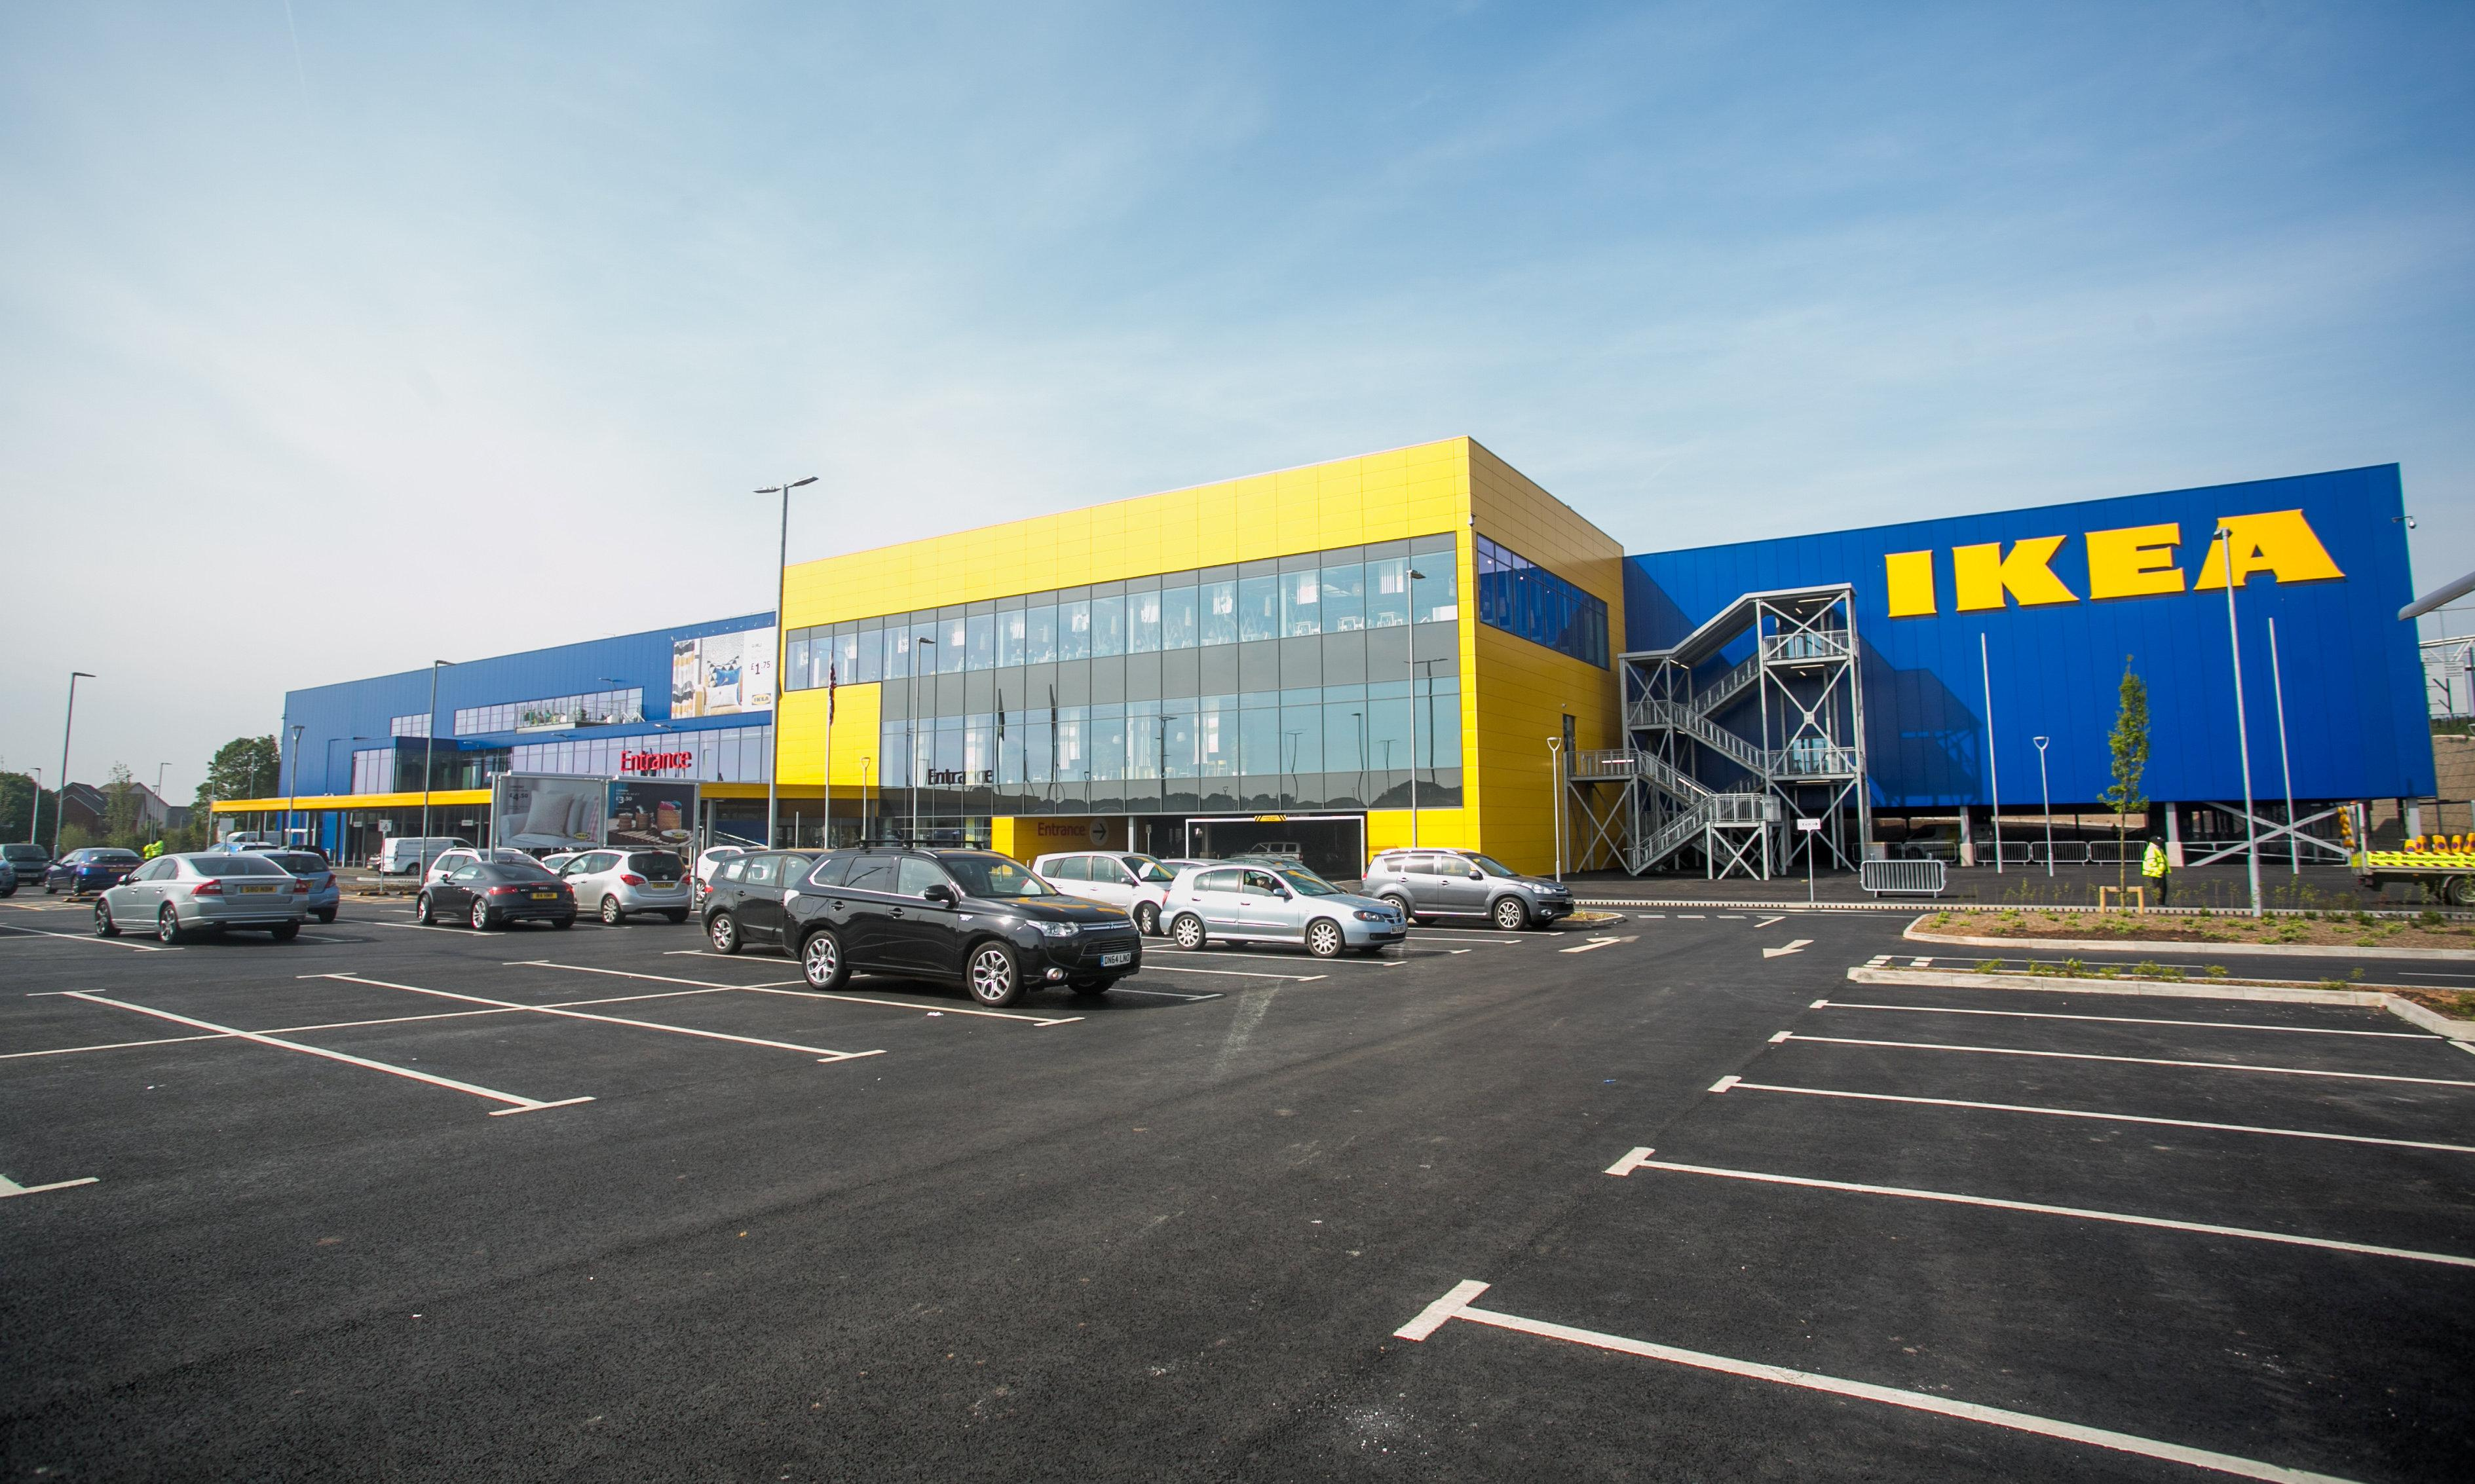 Ikea Bank Bad Ikea S New Store In Exeter Gives Wrong Directions To Shoppers